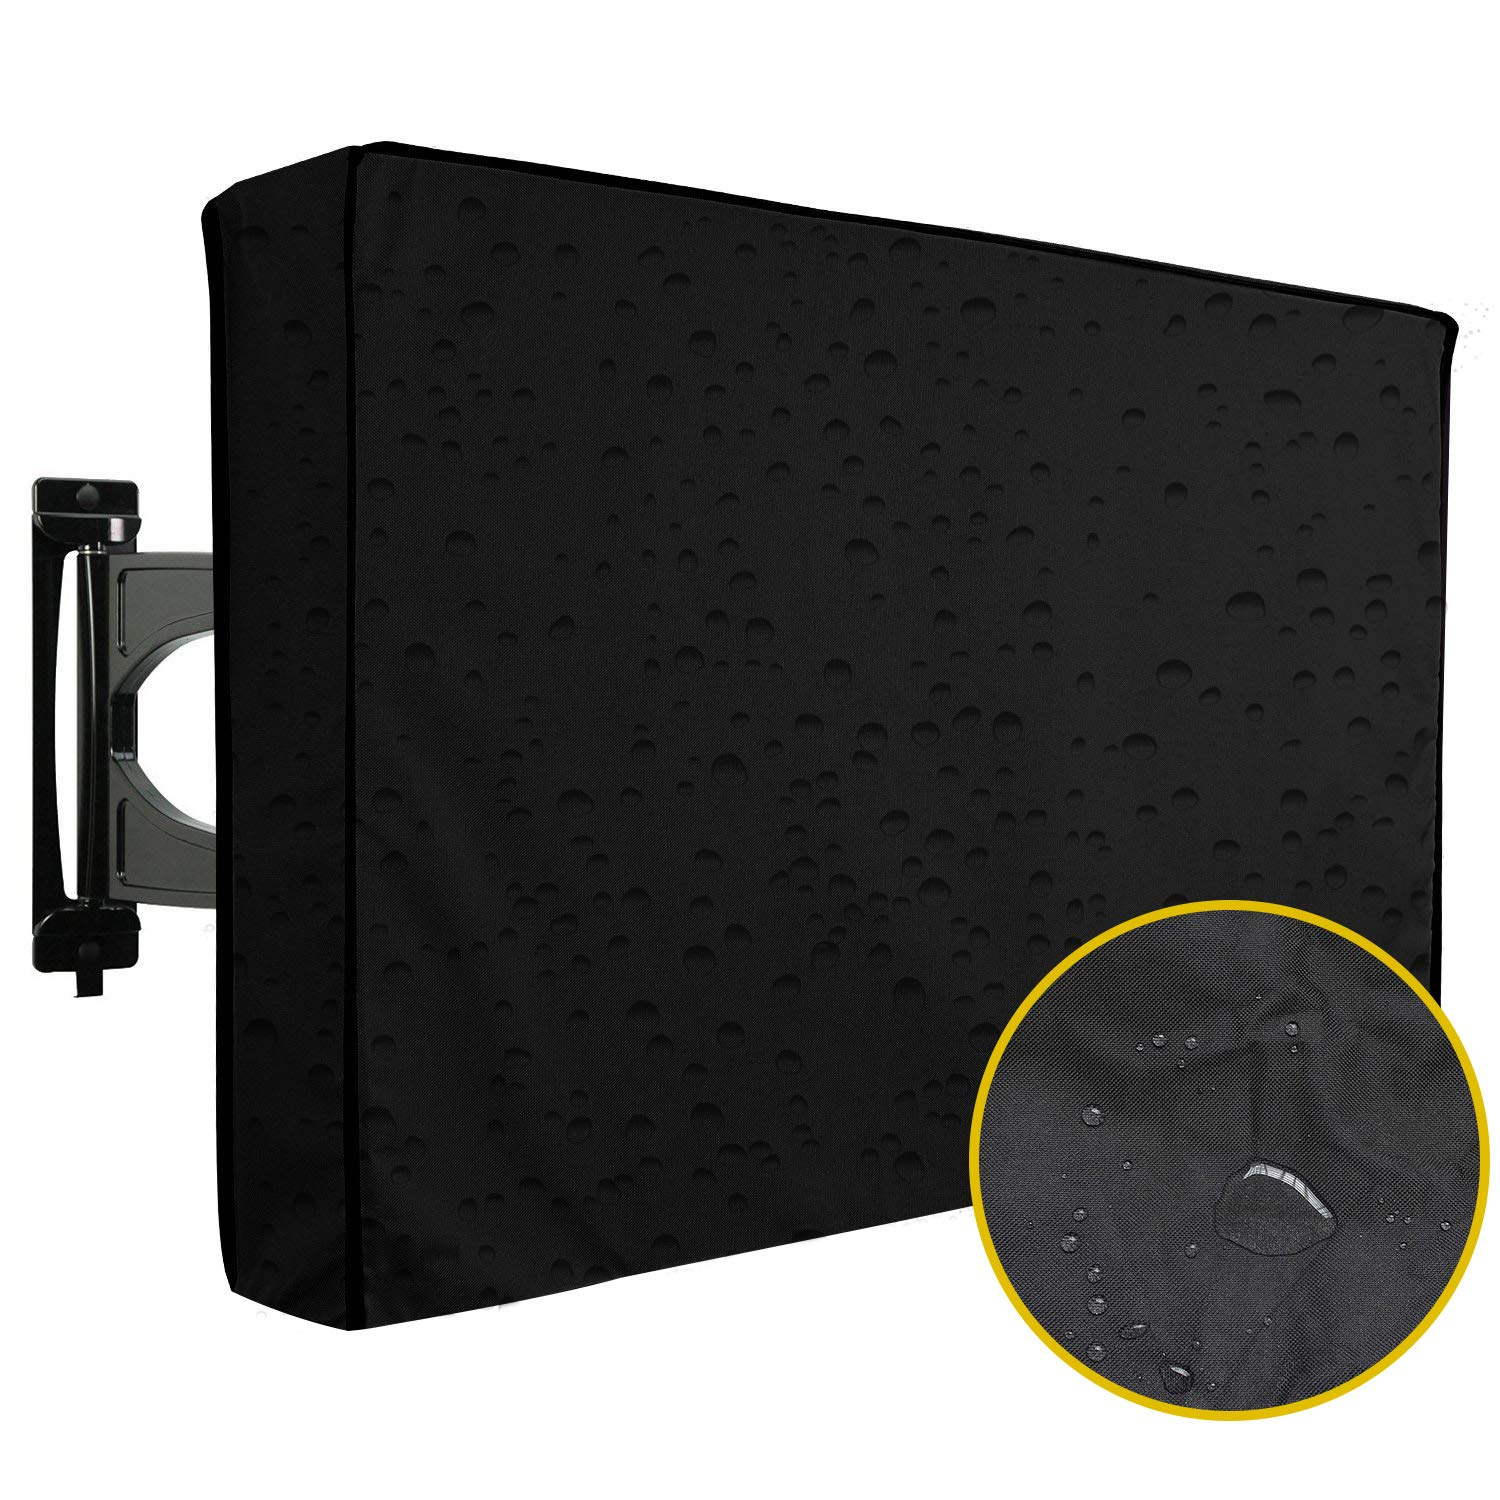 Trumno Outdoor TV Cover 50''-52'' inch - Universal Weatherproof Protector for Flat Screen TVs - Fits Most TV Mounts and Stands - Black by Trumno